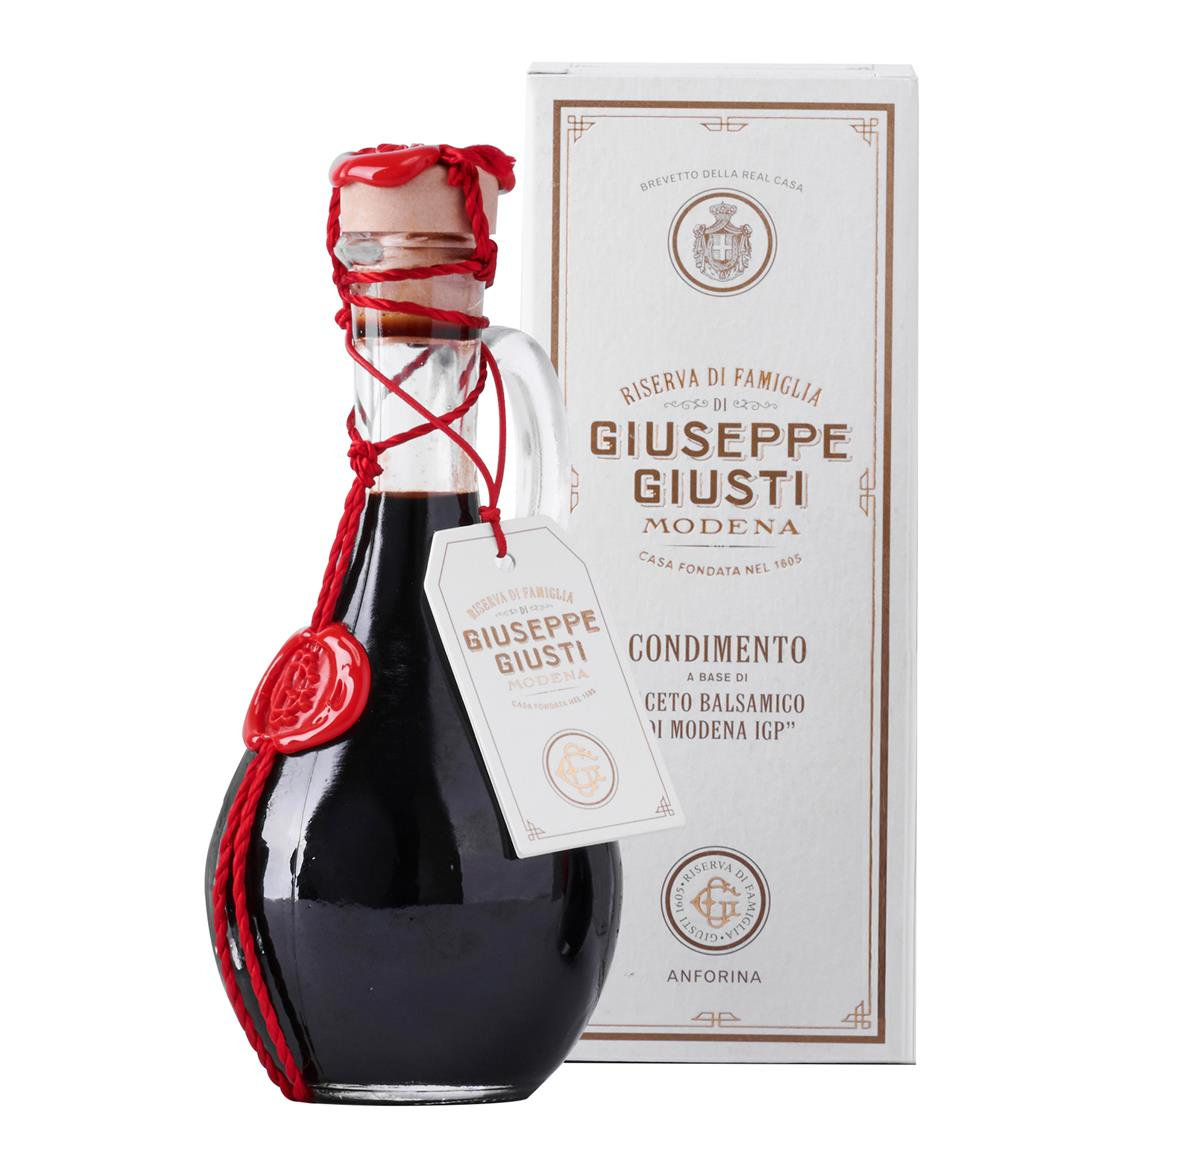 Balsamic Vinegar of Modena IGP - 2 Gold Medals - Anforina Modenese in a 250 ml hatbox